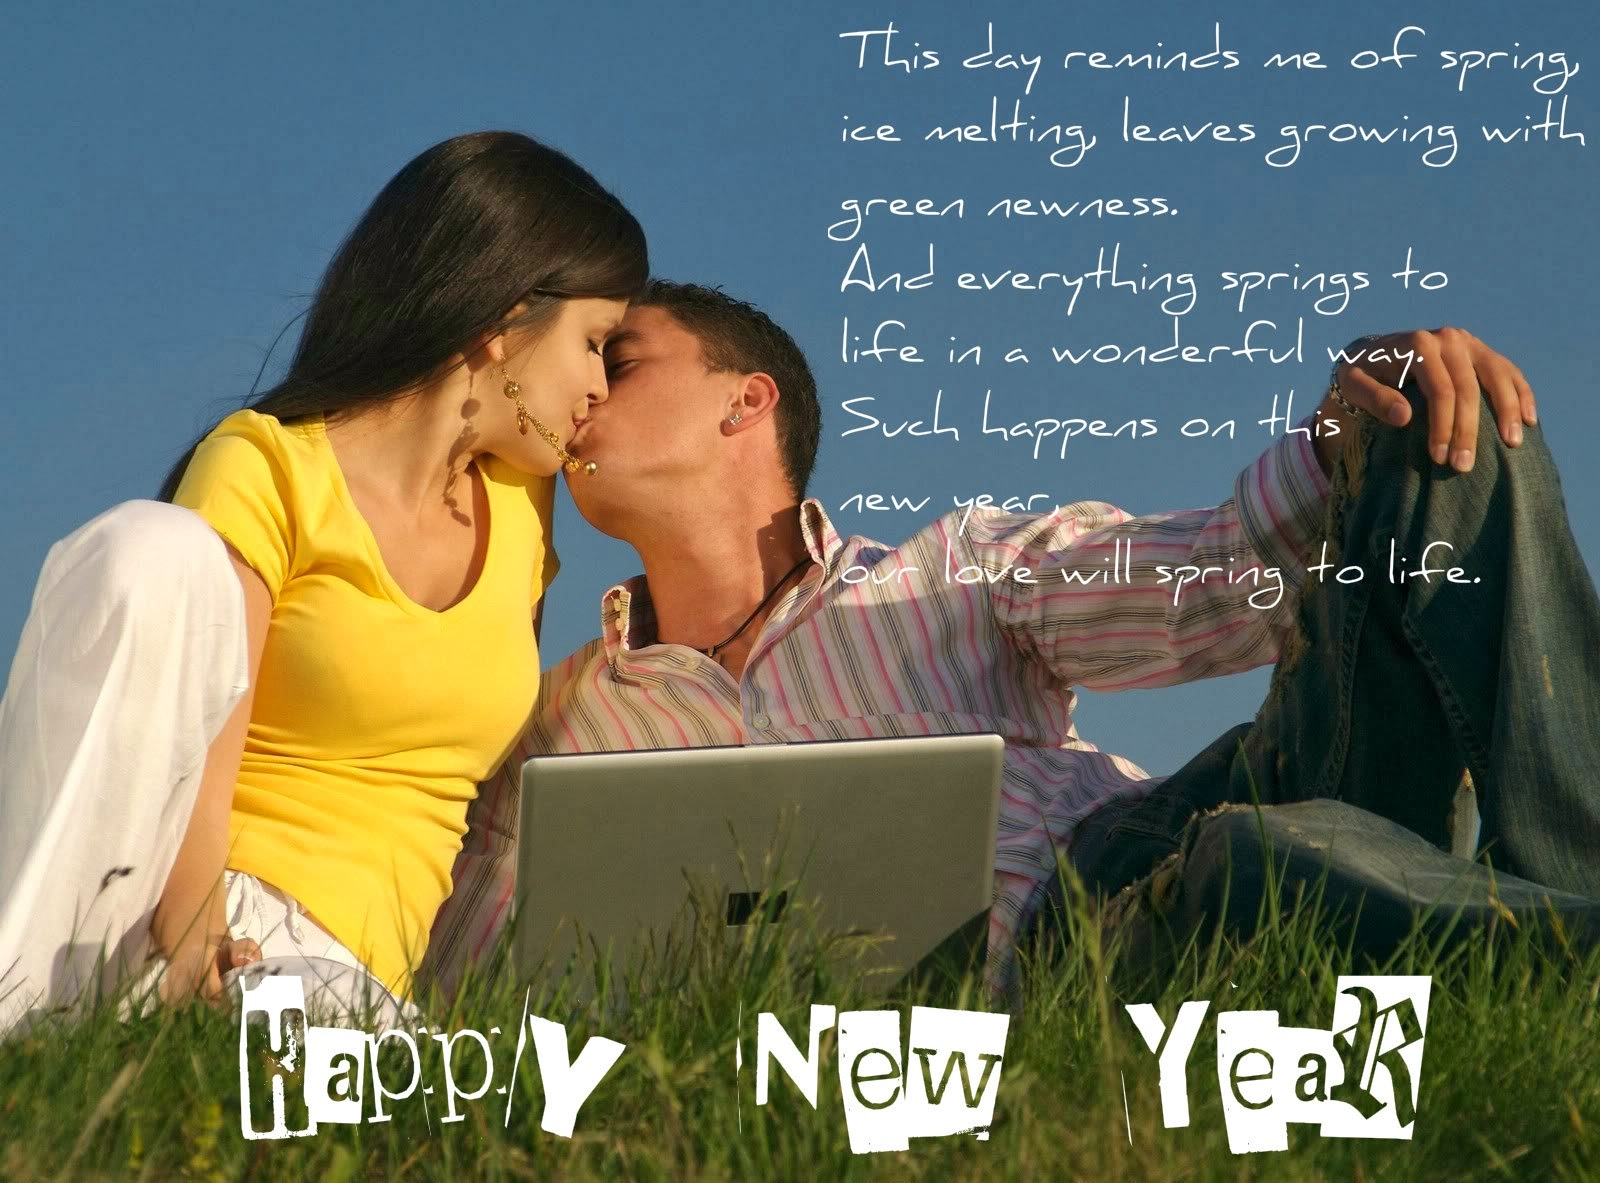 Happy New Year 2014 Romantic Greetings Wishes HD Wallpapers. 1600 x 1183.Happy New Year Wishes In Hindi Word 140